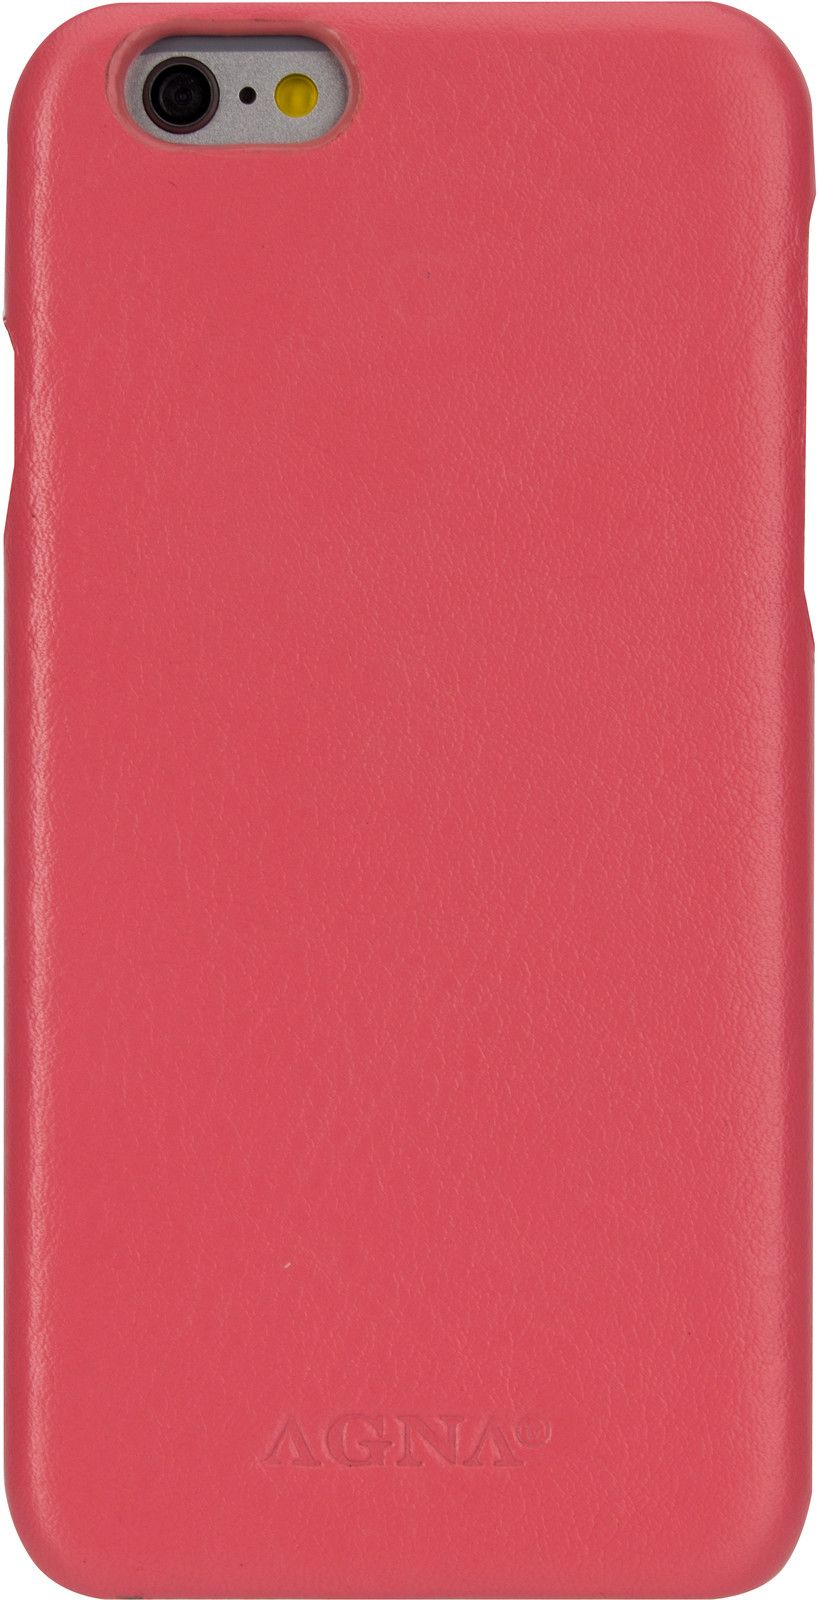 Agna iPlate Real Leather (iPhone 6/6S) – Rosa